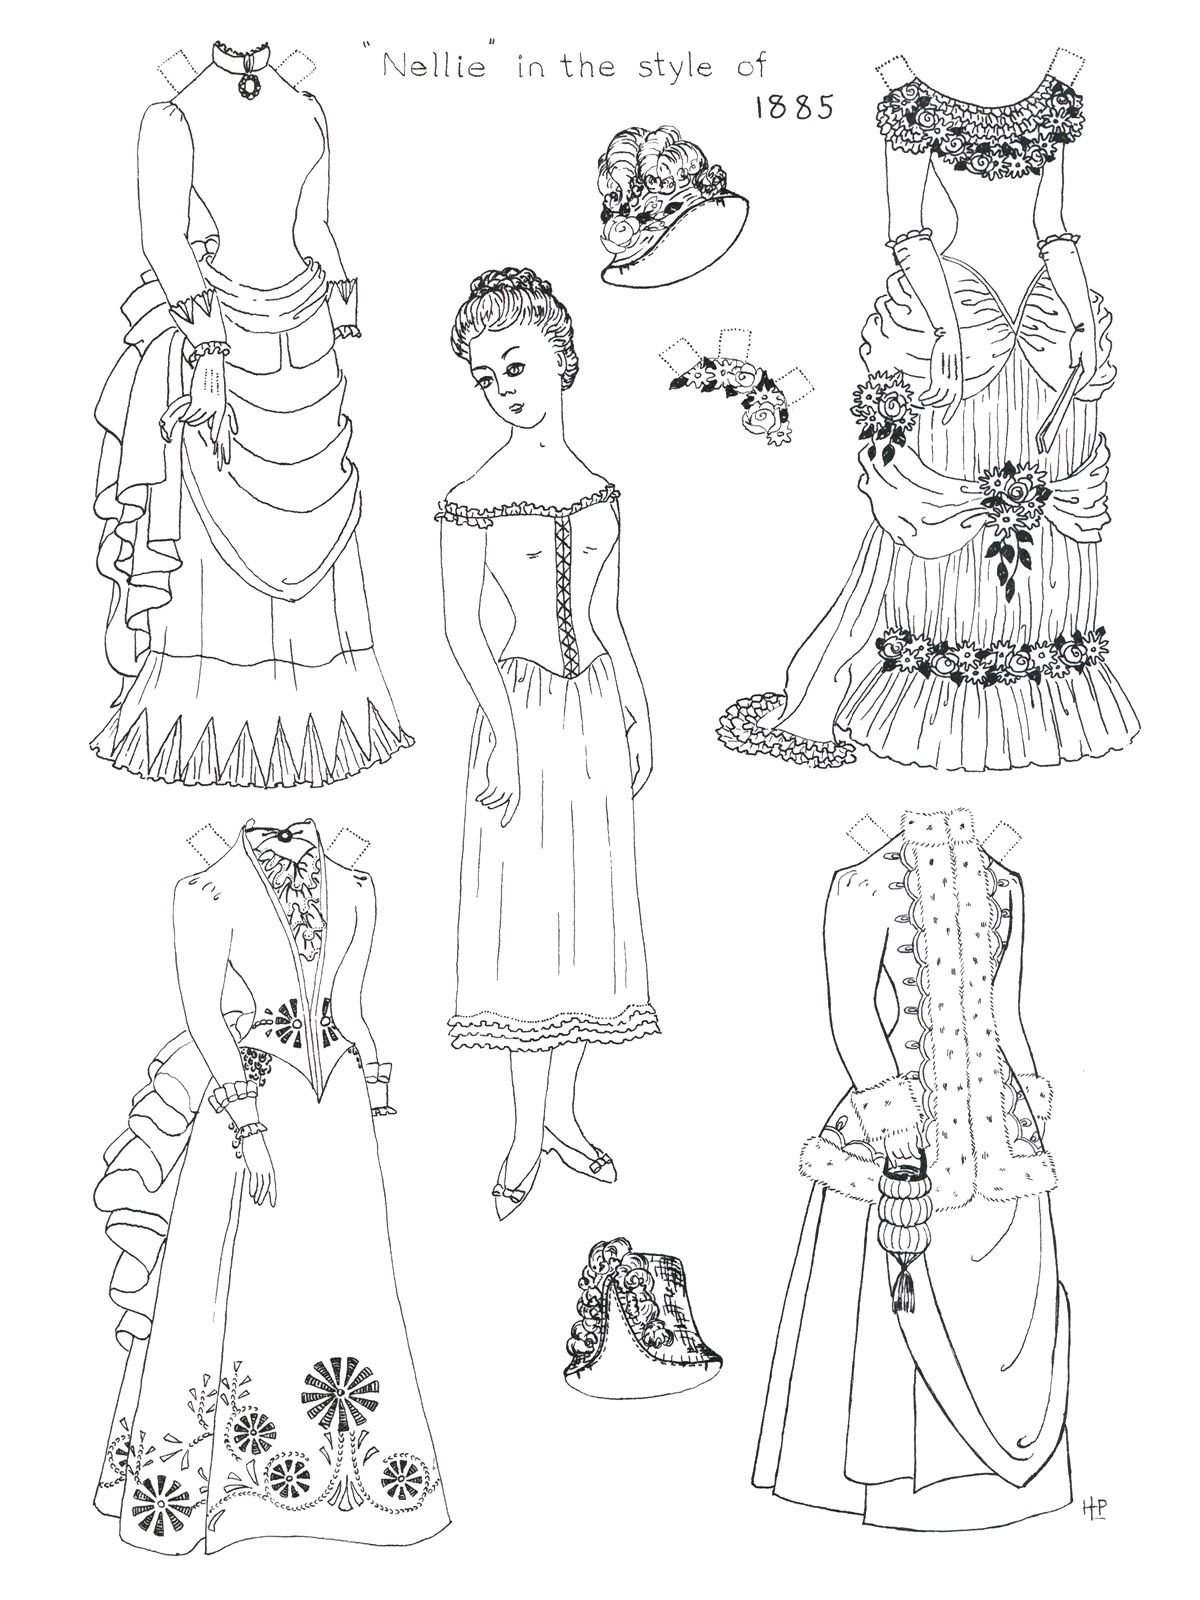 Pin by Rhodesangie on paper Dolls